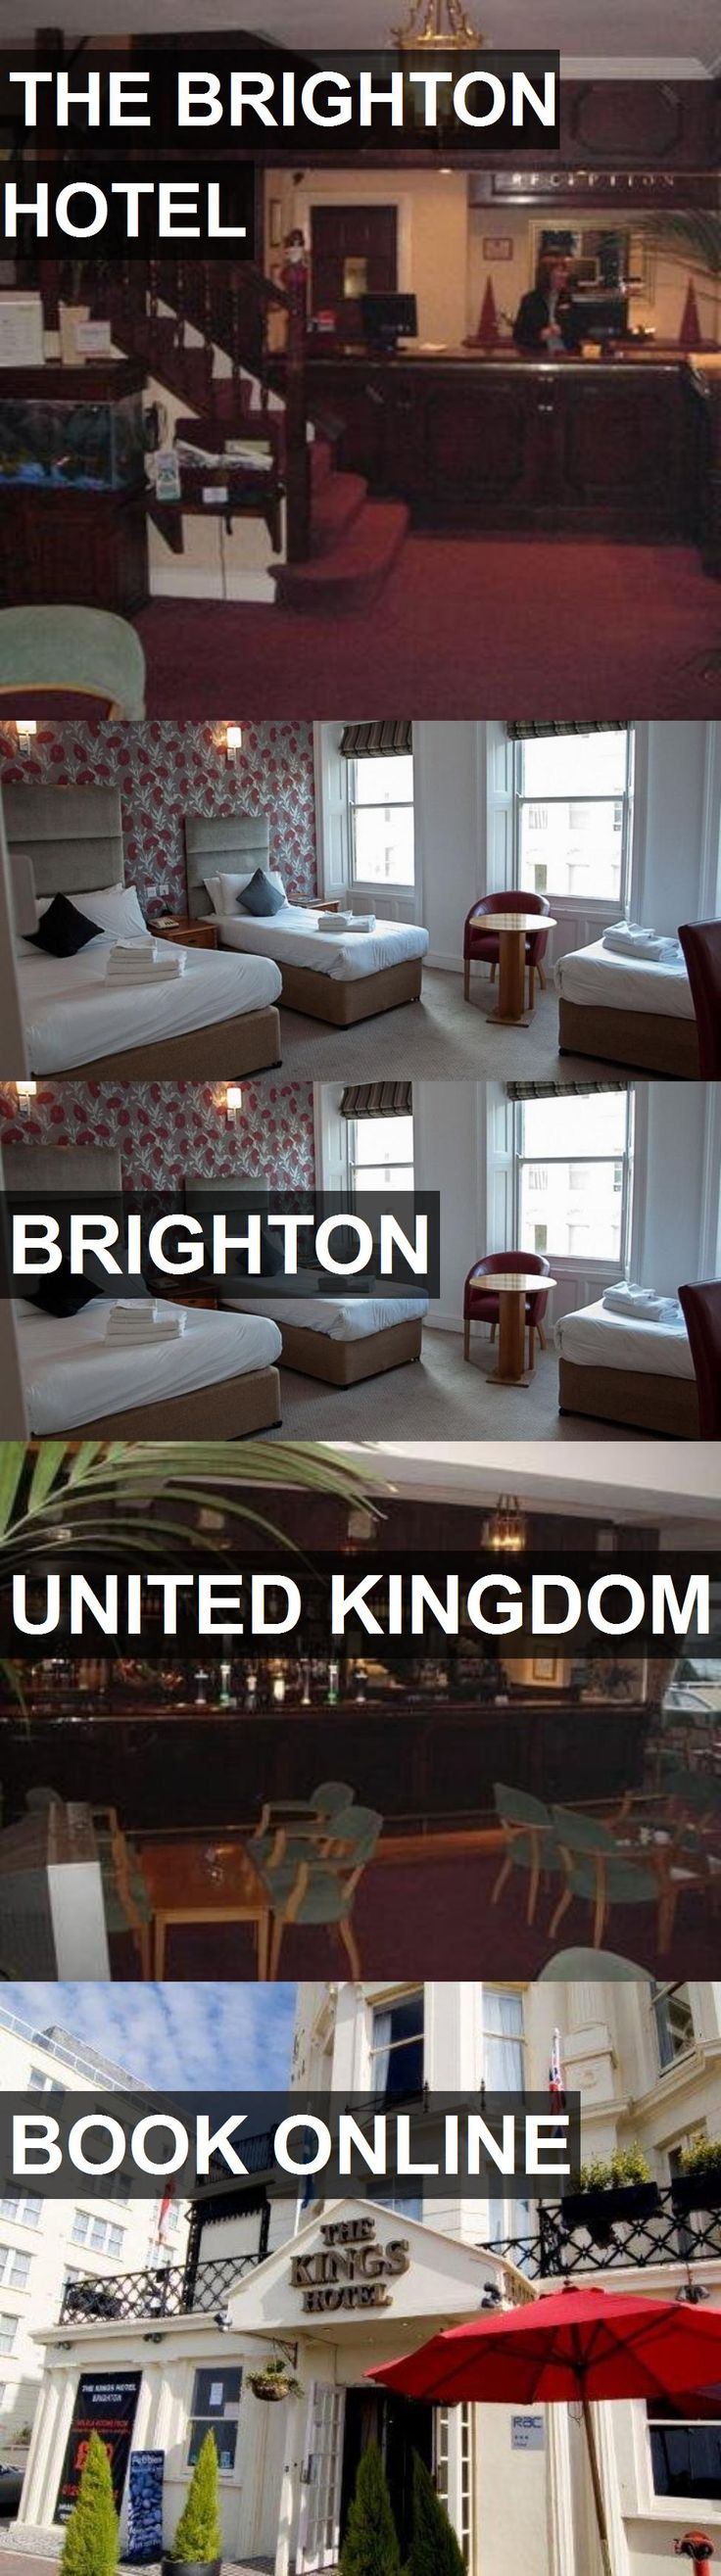 Hotel THE BRIGHTON HOTEL in Brighton, United Kingdom. For more information, photos, reviews and best prices please follow the link. #UnitedKingdom #Brighton #THEBRIGHTONHOTEL #hotel #travel #vacation